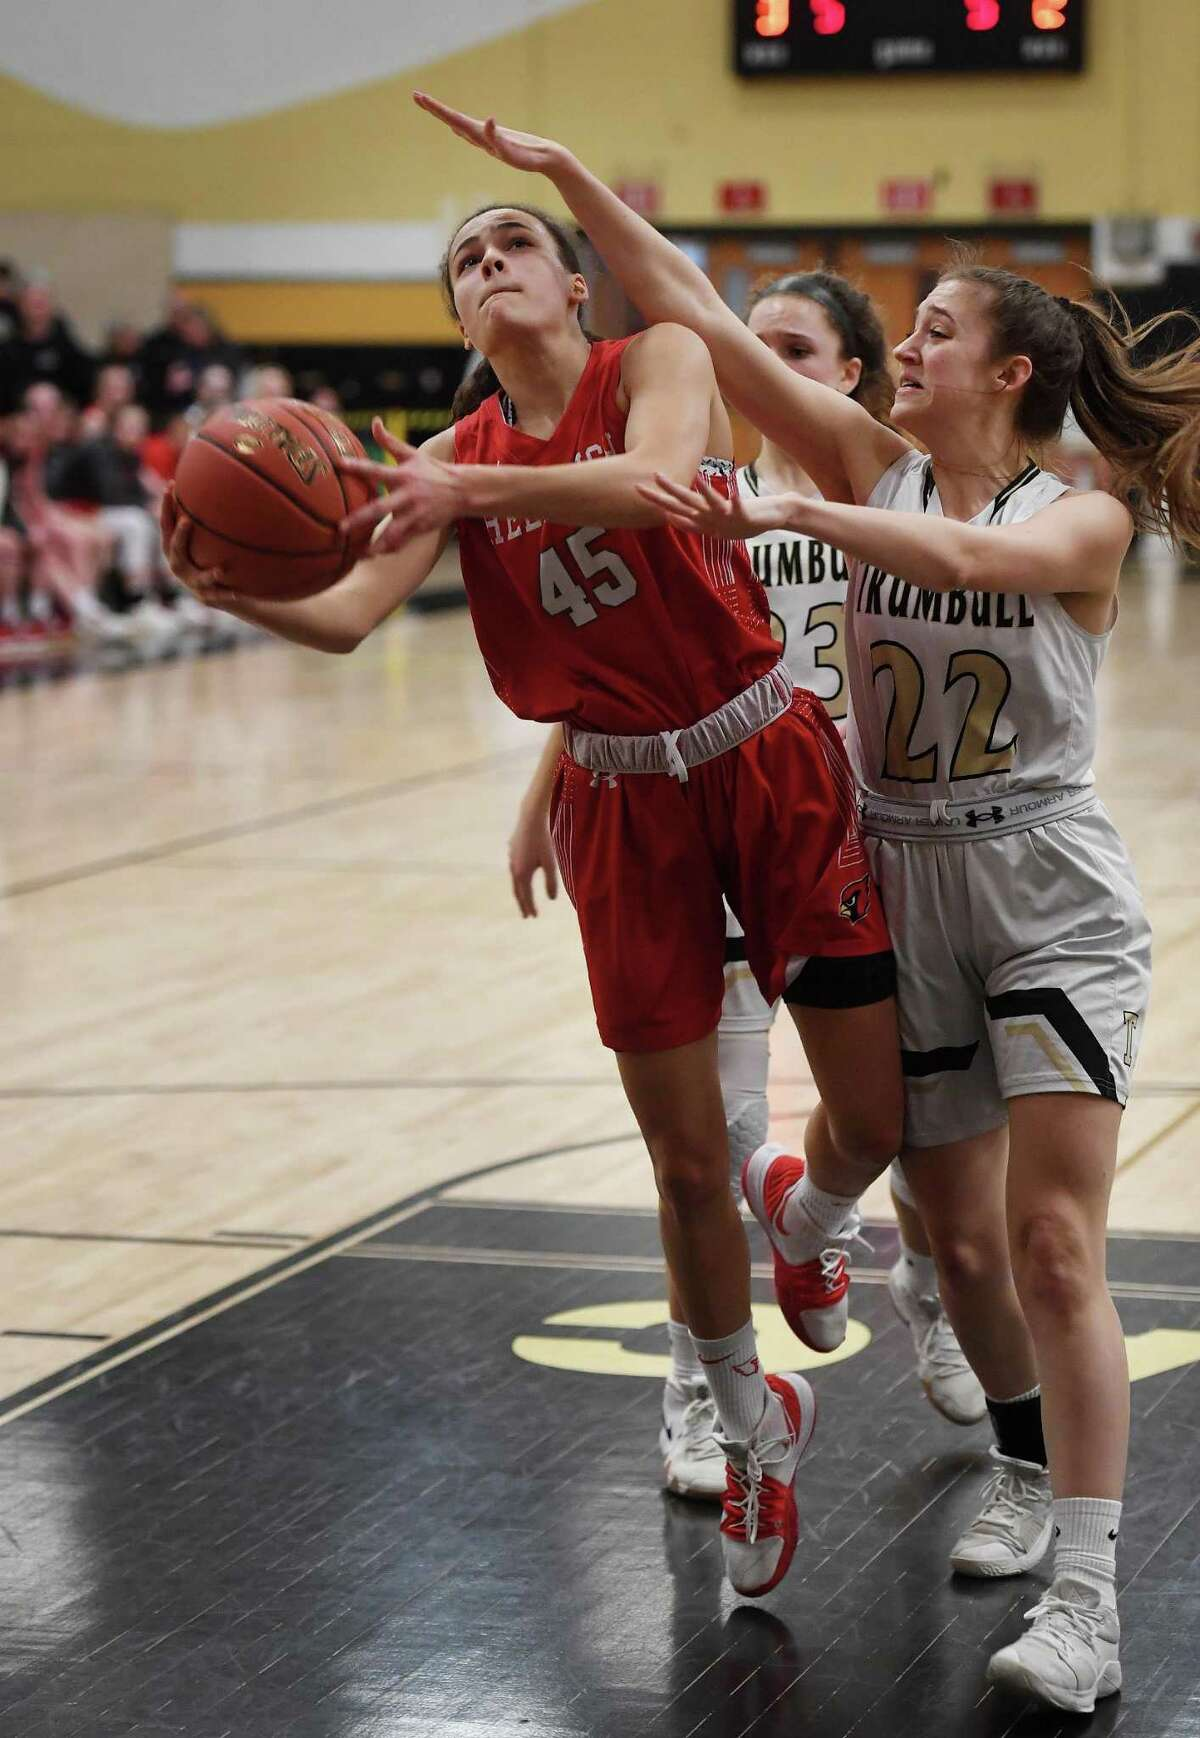 Greenwich's Mackenzie Nelson drives to the basket defended by Trumbull's Julia Lindwell during the first half of their CIAC Class LL girls basketball quarterfinal game at Trumbull High School in Trumbull, Conn. on Monday, March 9, 2020.